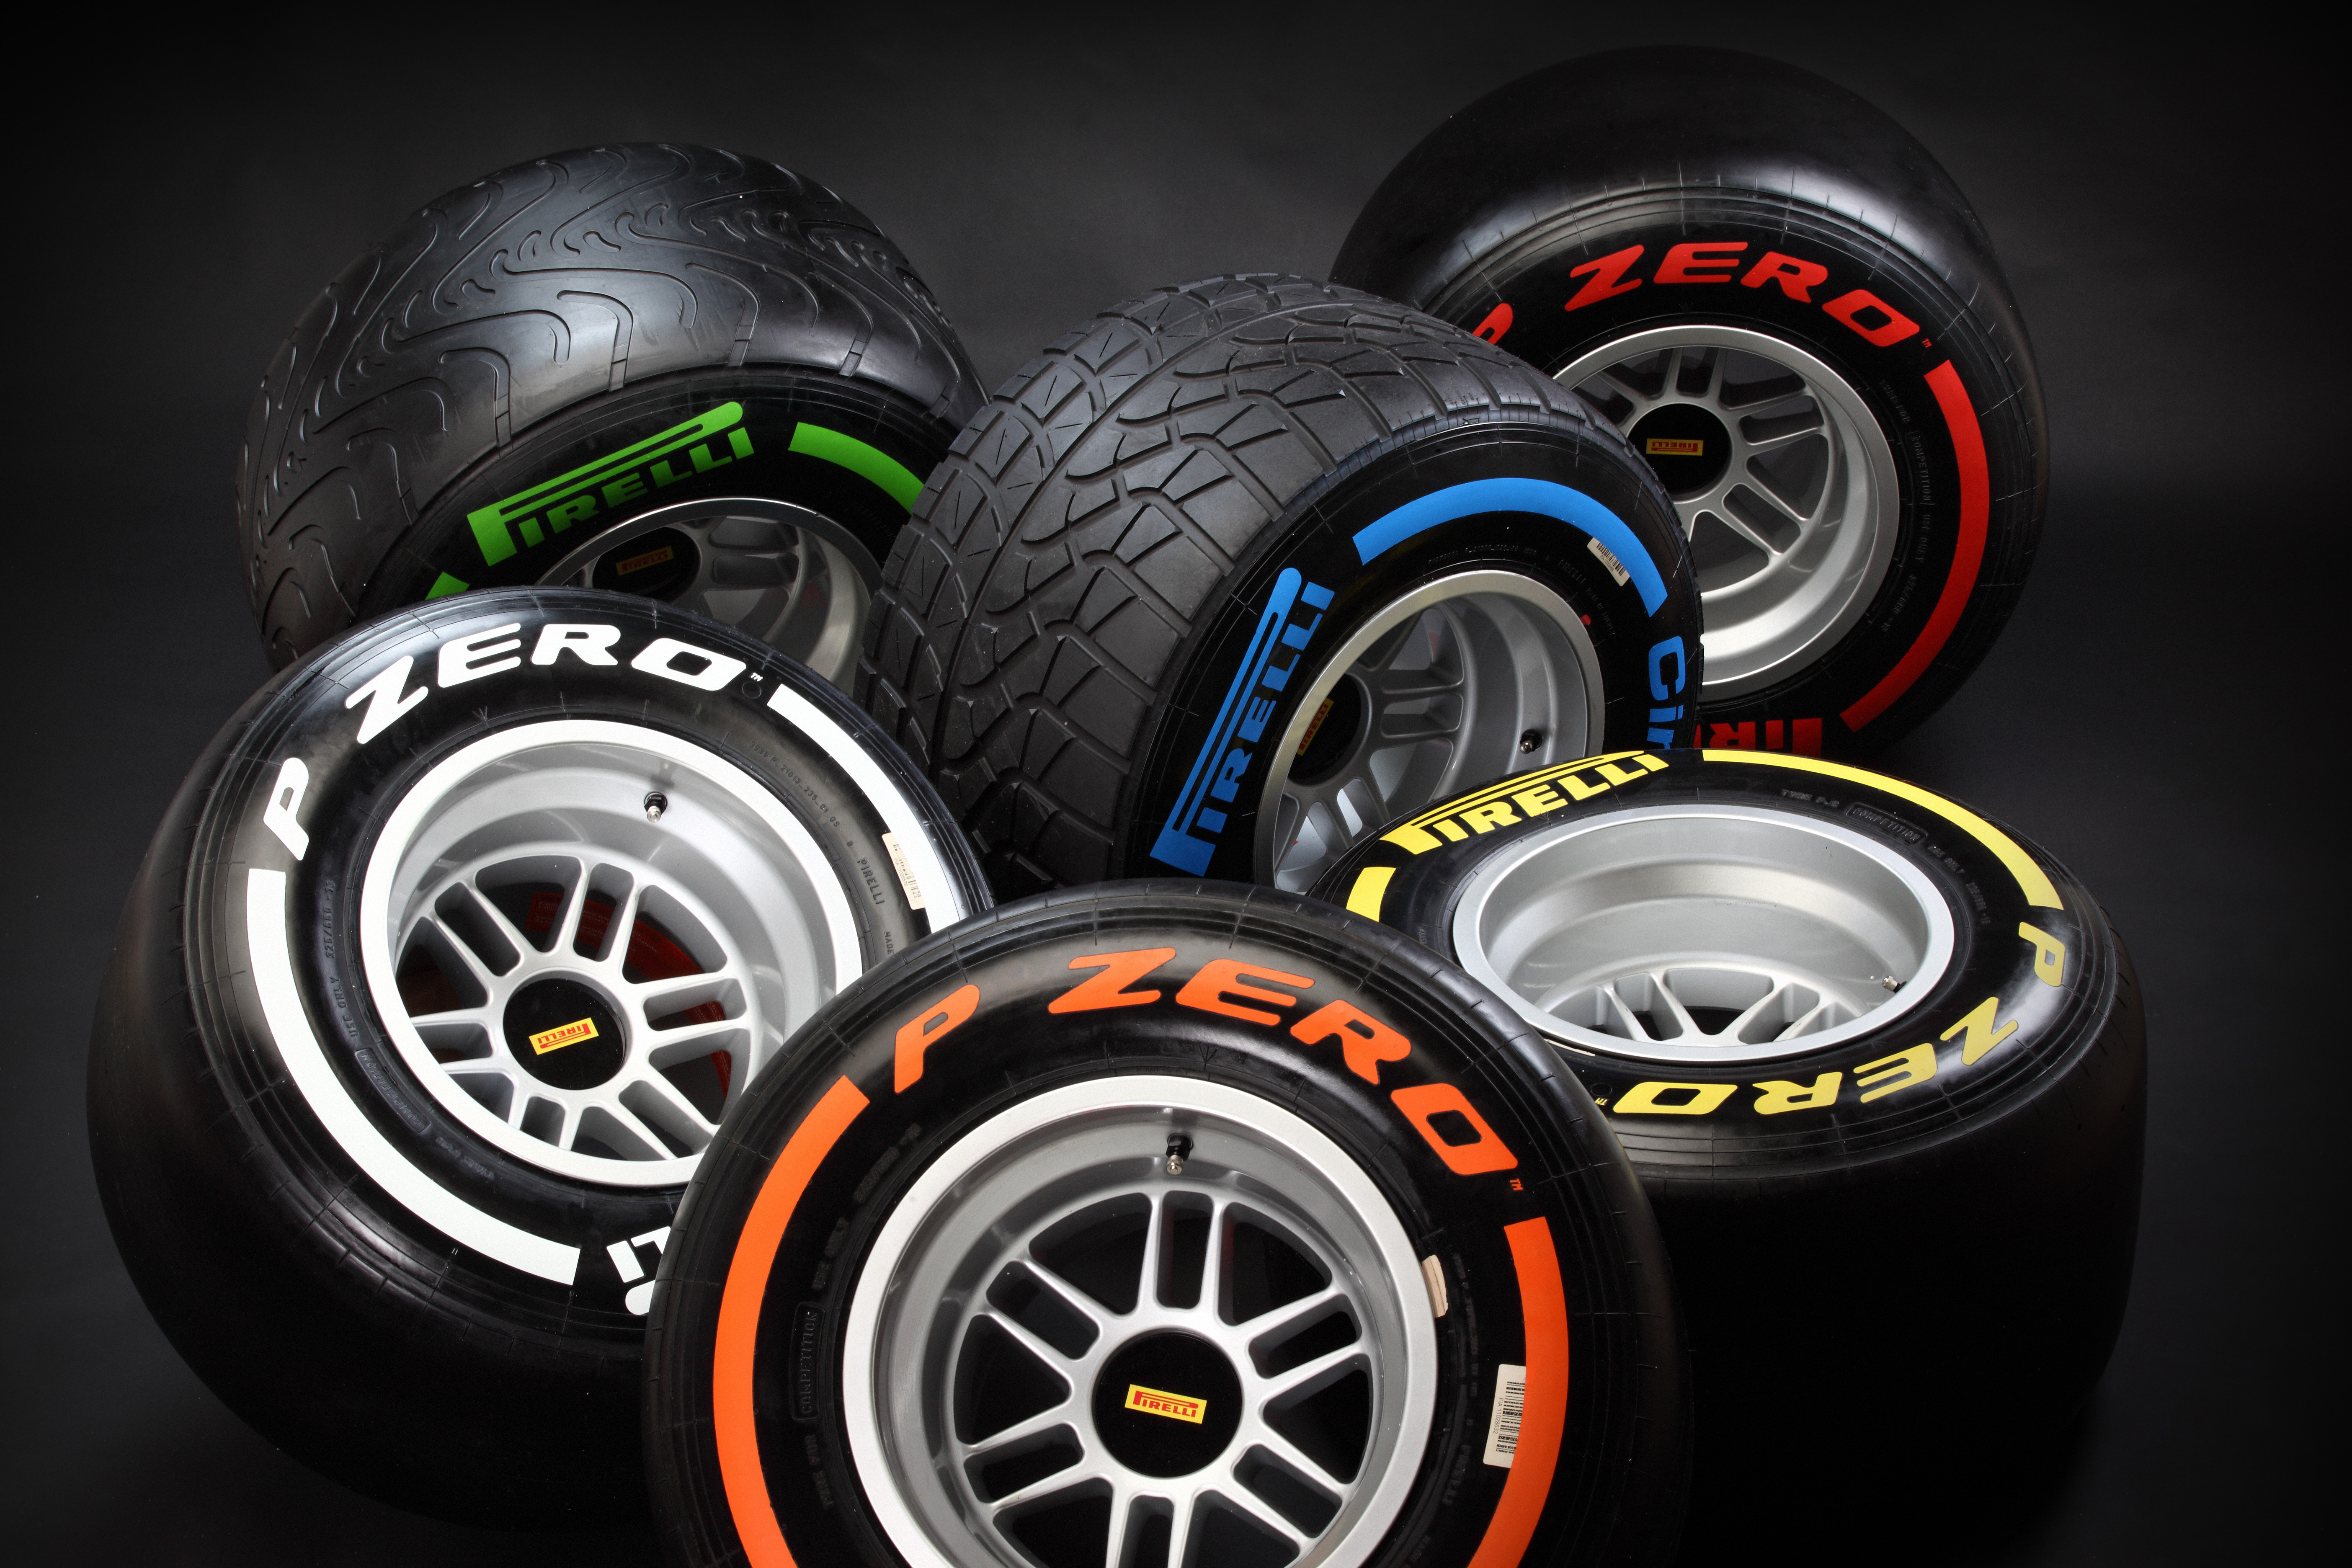 Pirelli announces F1 compound choices up to Hungary